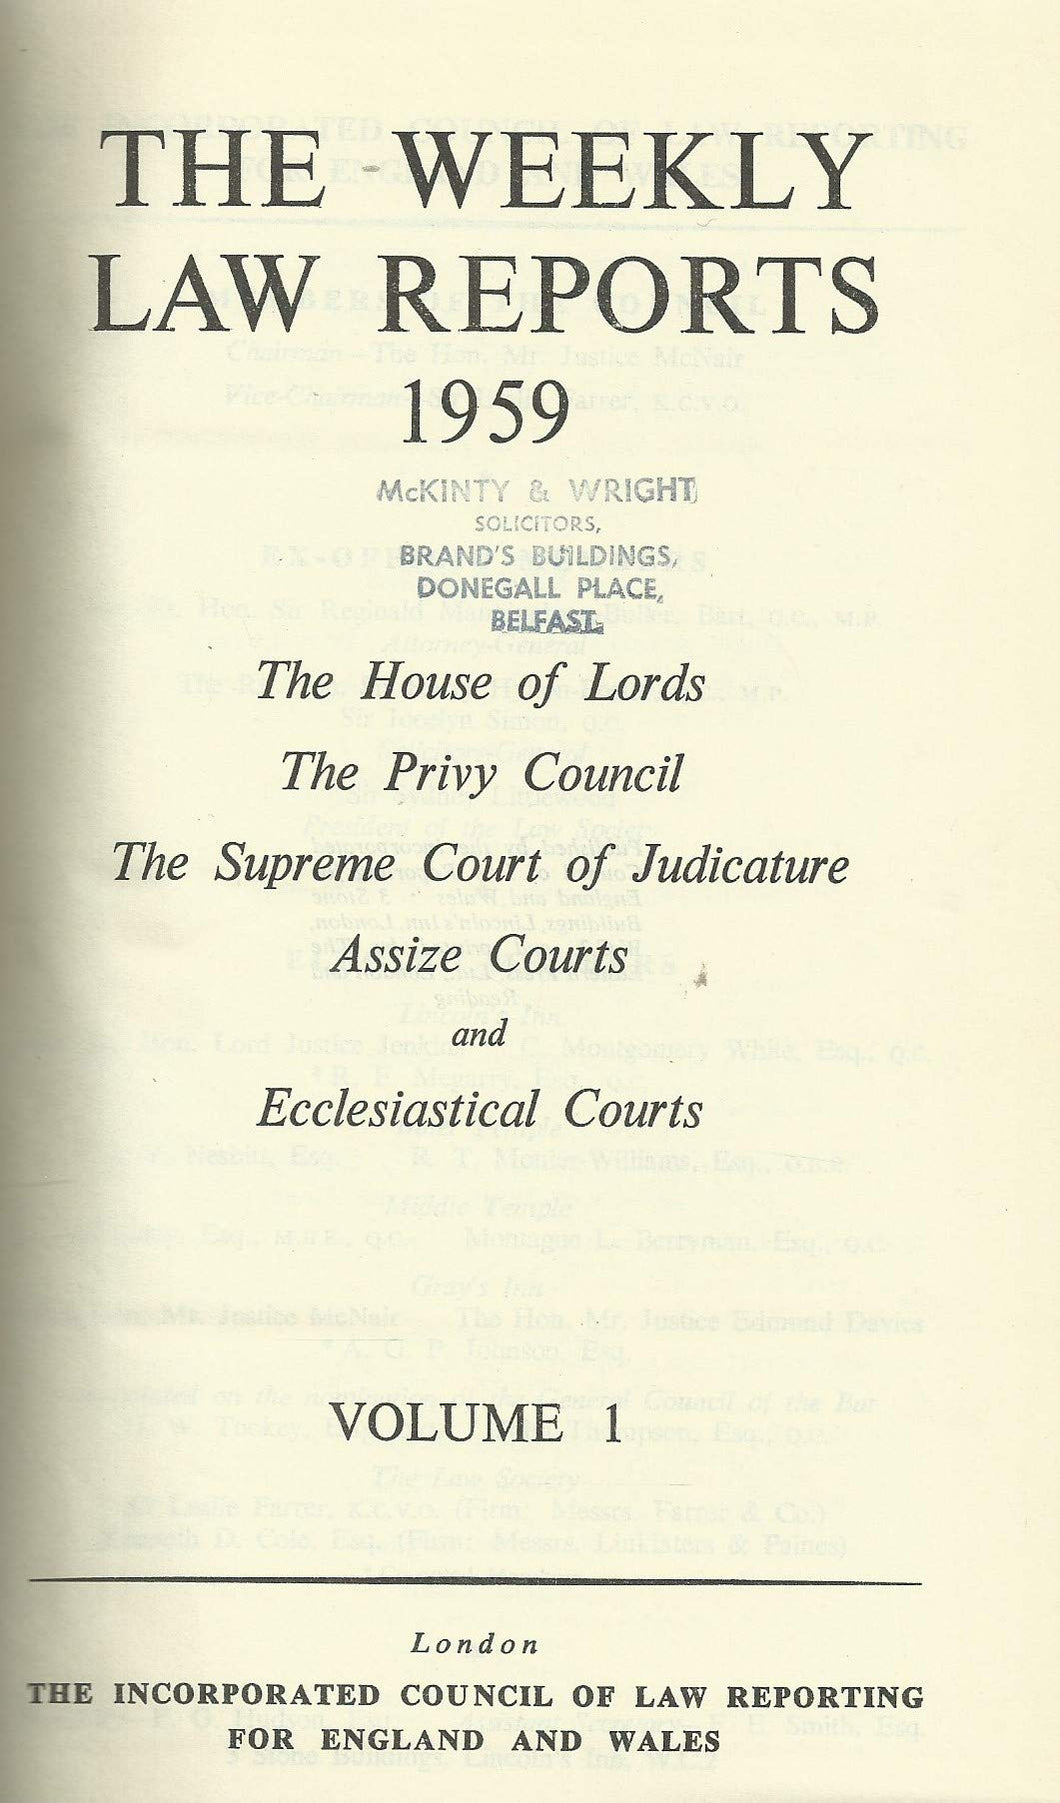 The Weekly Law Reports 1959, Volume I